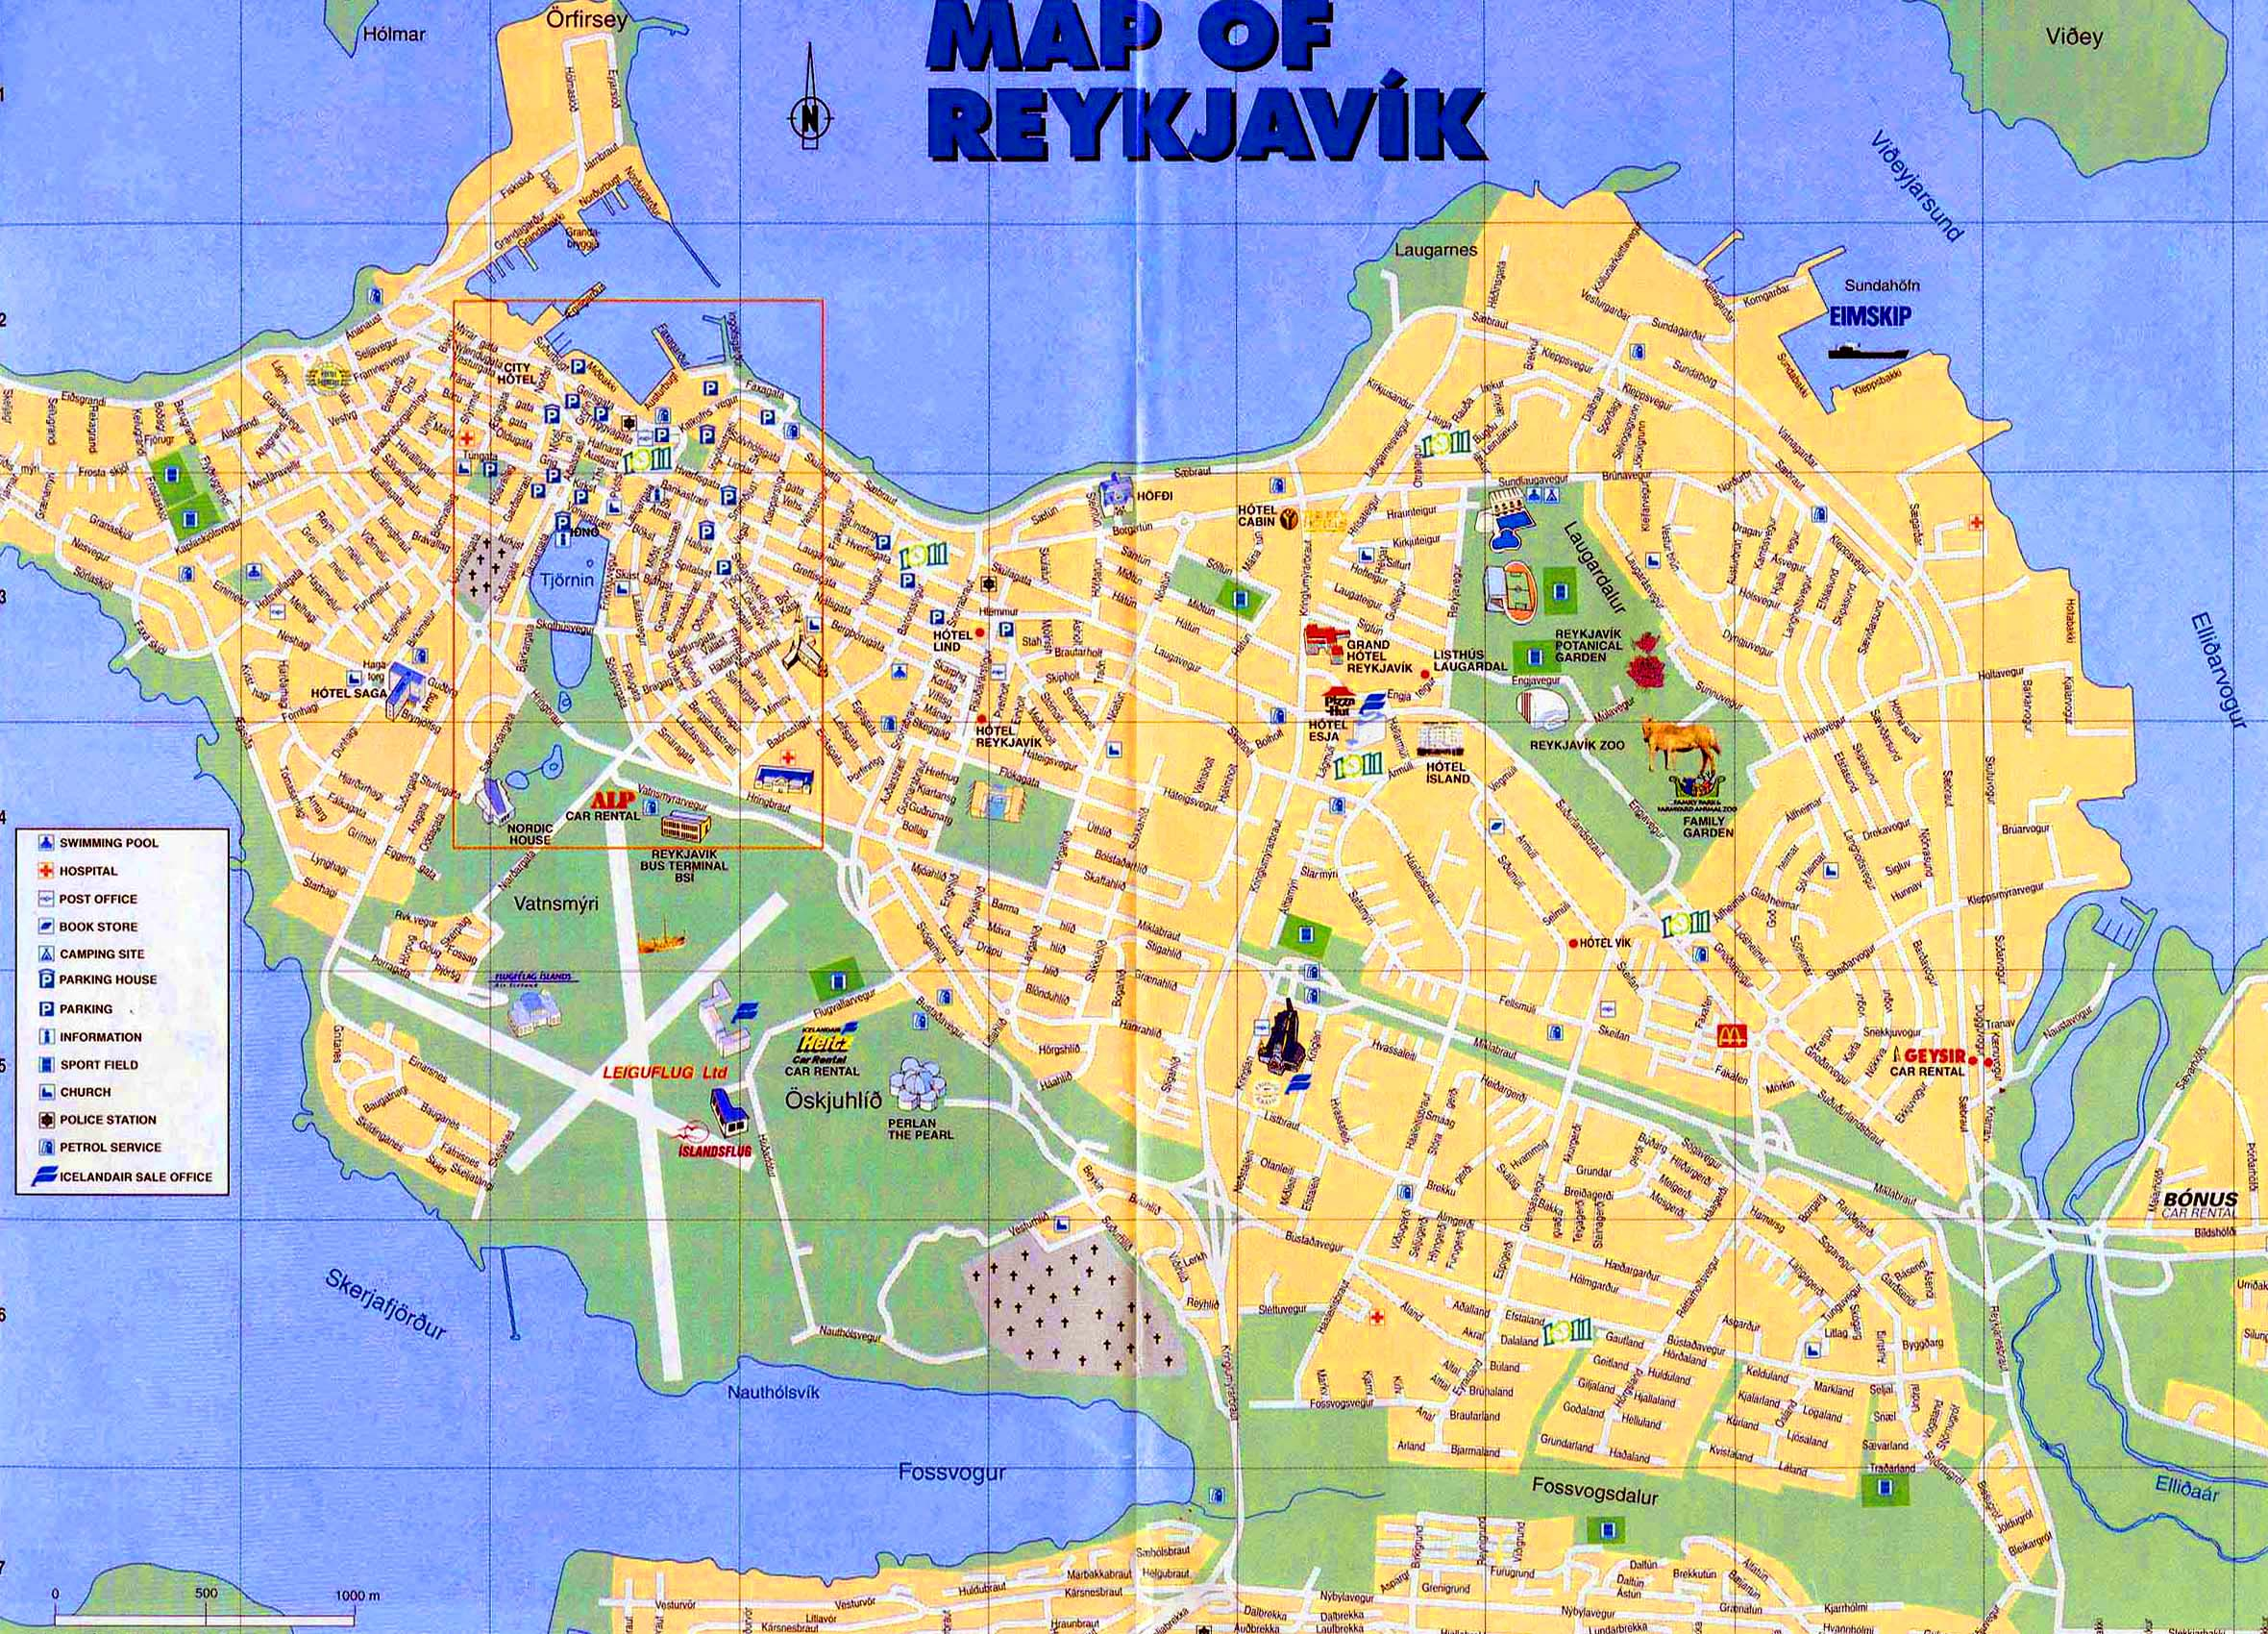 Large reykjavik maps for free download and print high resolution large map of reykjavik 1 gumiabroncs Image collections